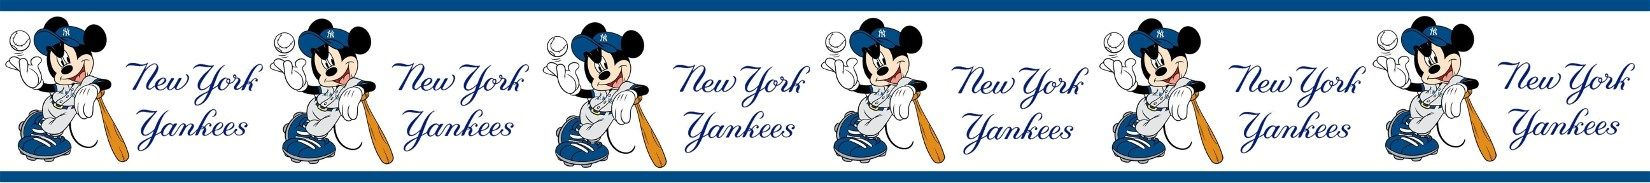 Mickey Mouse Yankees wallpaper border bykreationz4kidz